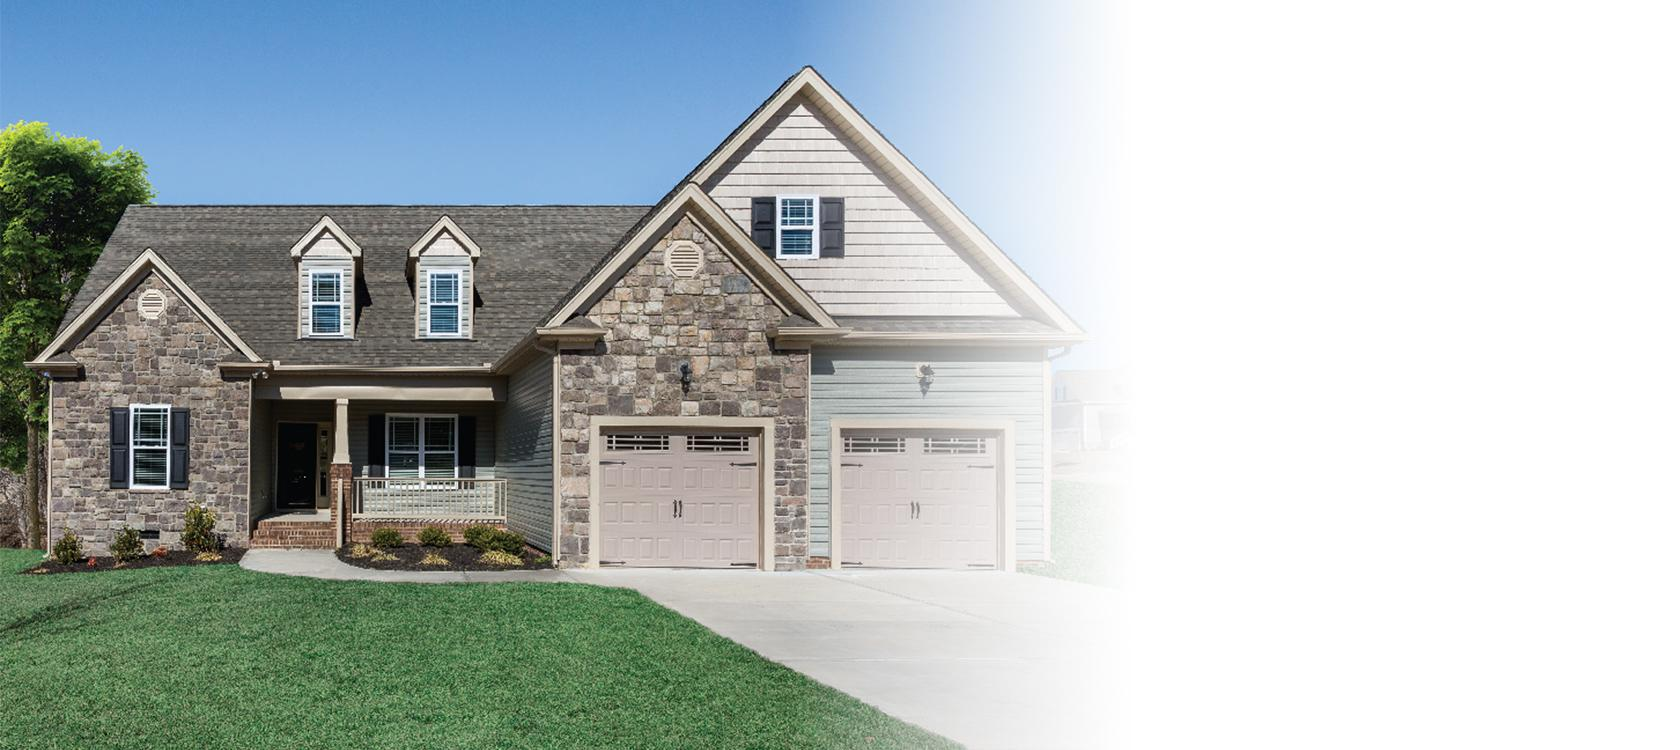 New Homes in Raleigh NC | Wynn Homes | New Homes Cary NC